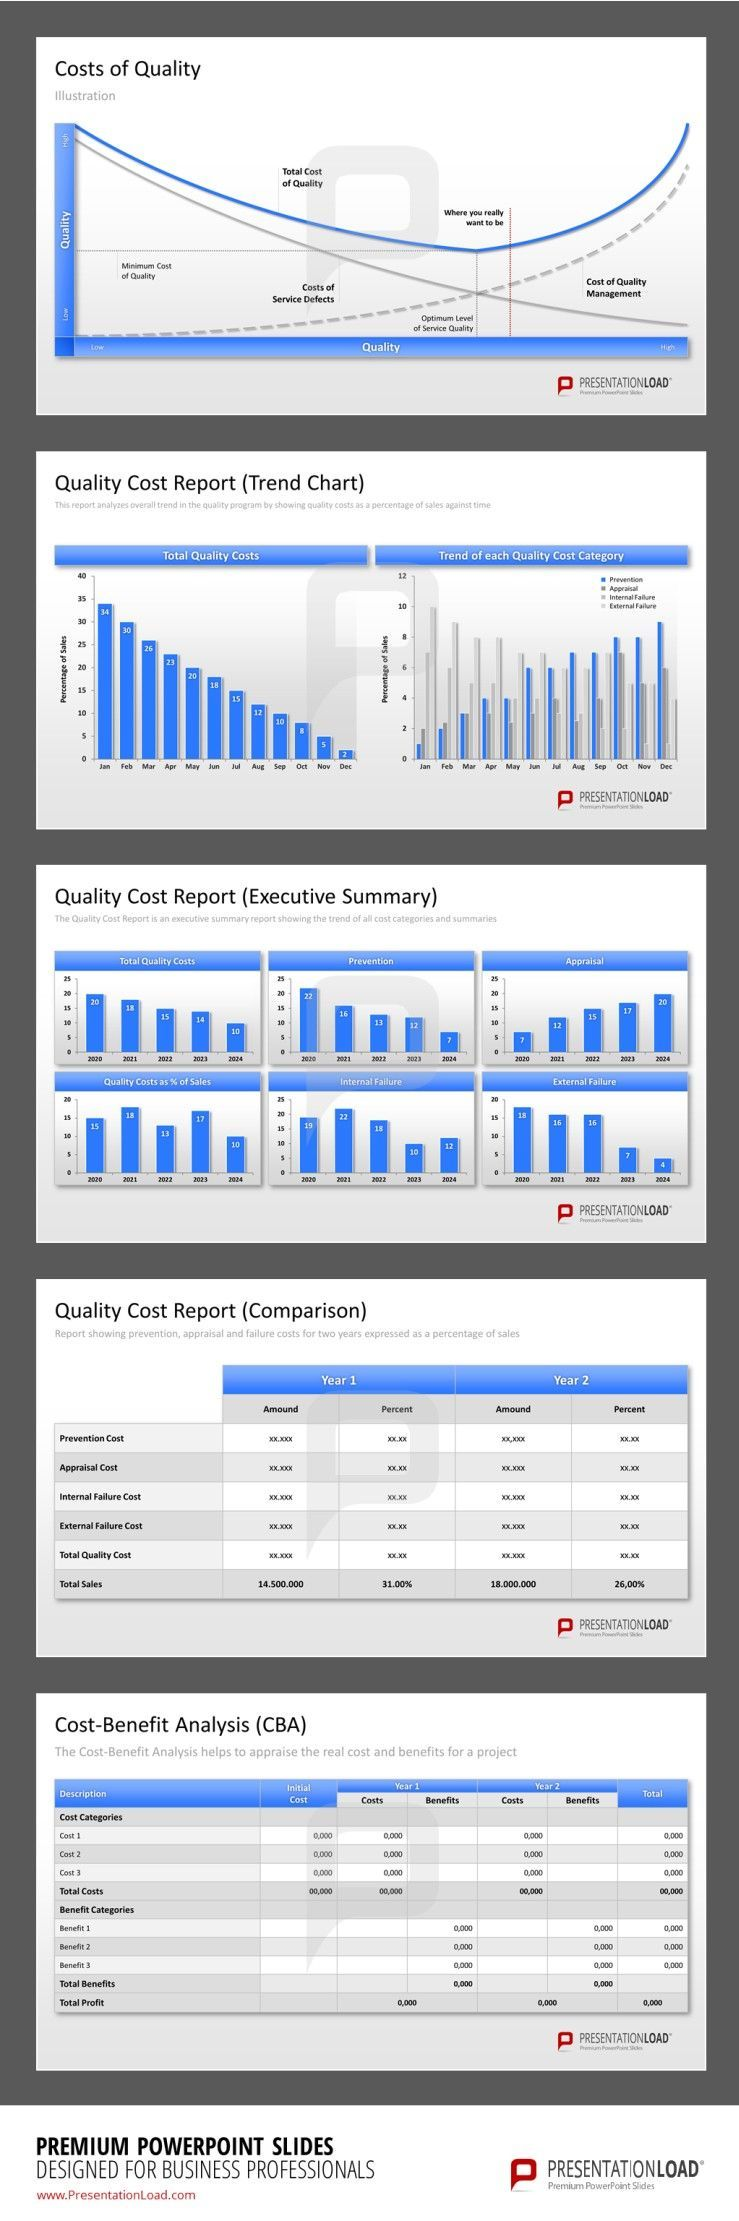 total-quality management powerpoint templates to keep an eye on, Modern powerpoint